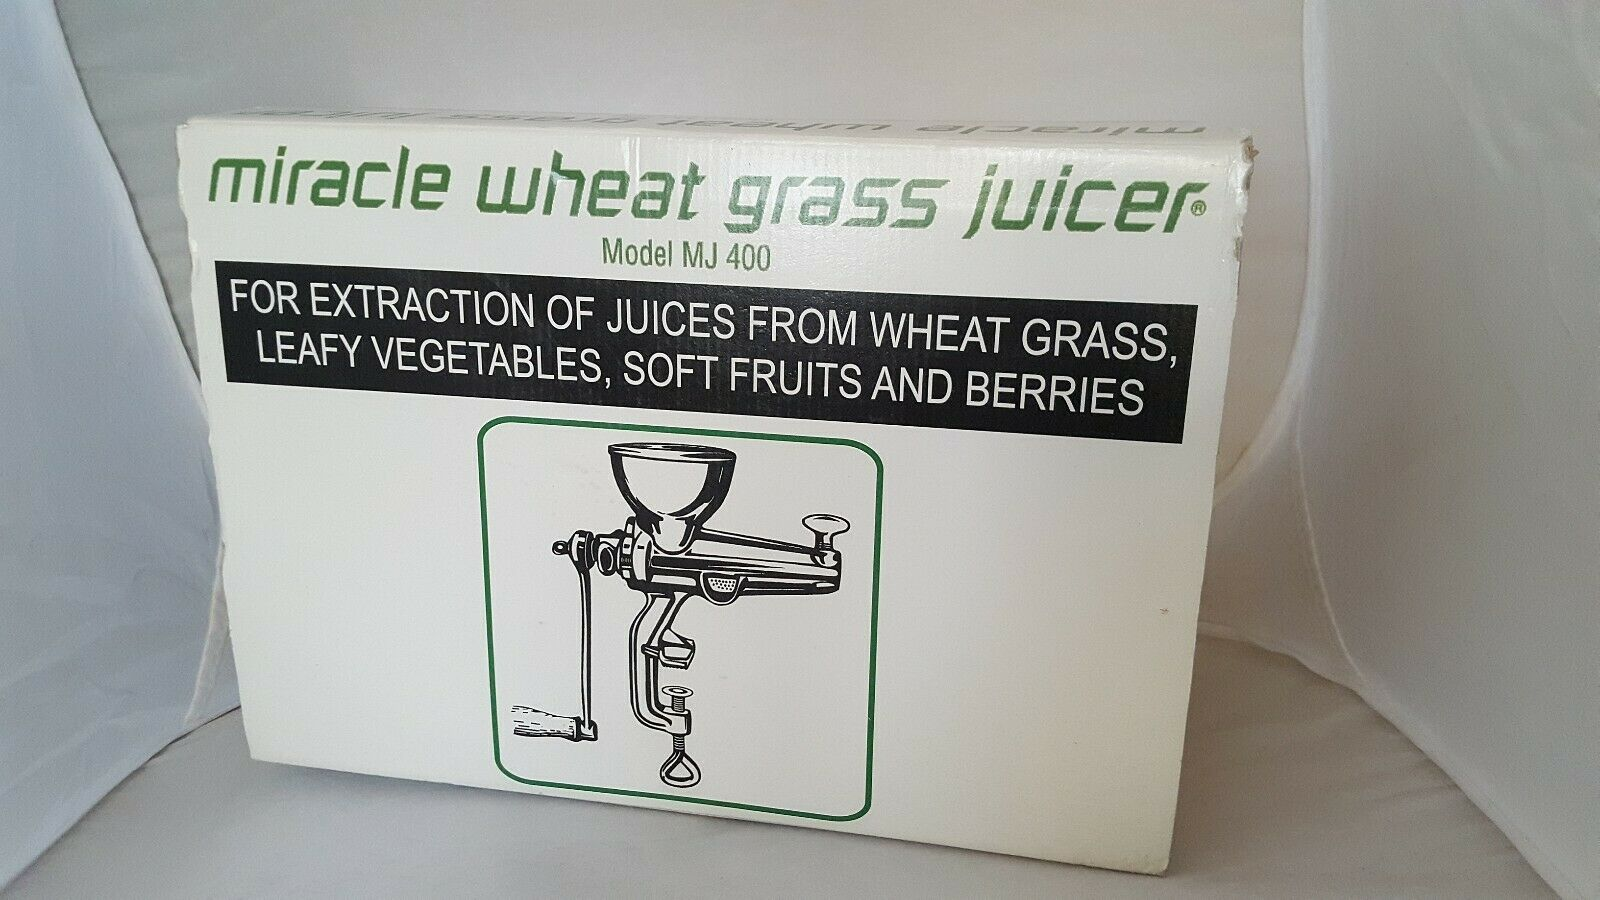 Miracle Wheat Grass Juicer MJ 400